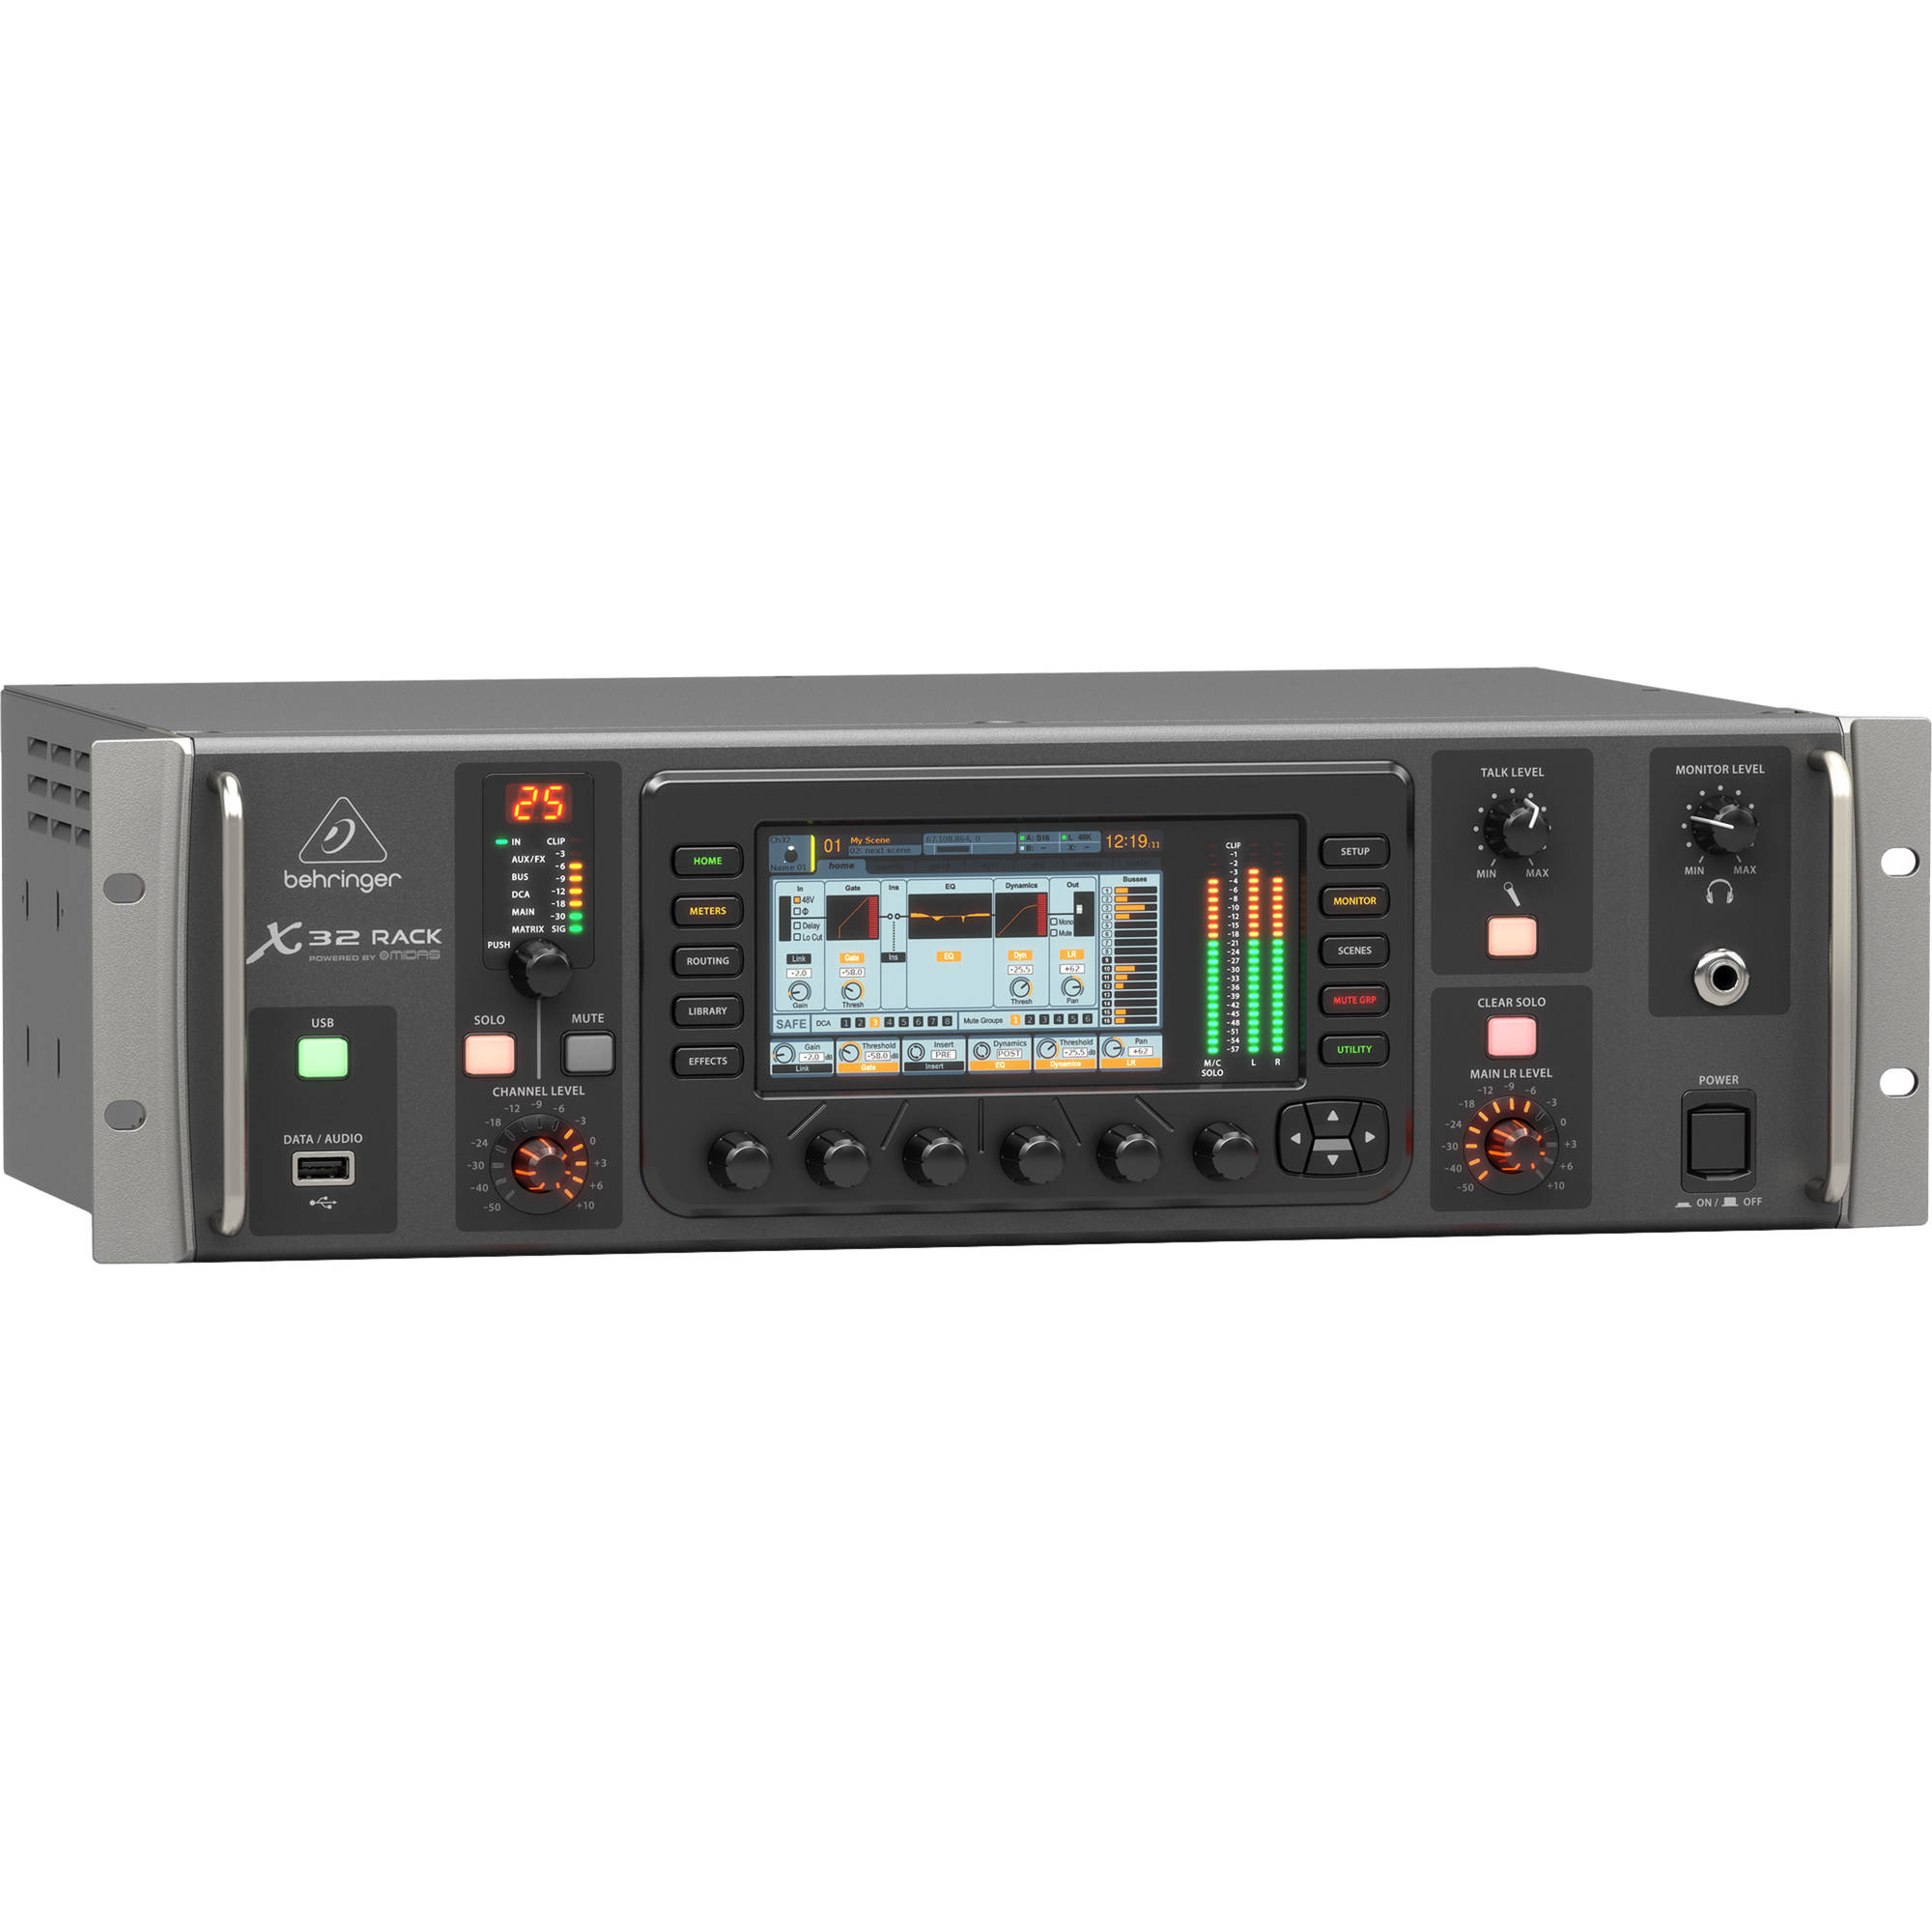 Behringer X32 Rack 40-Input, 25-Bus Digital Mixer with 16 Microphone Preamps